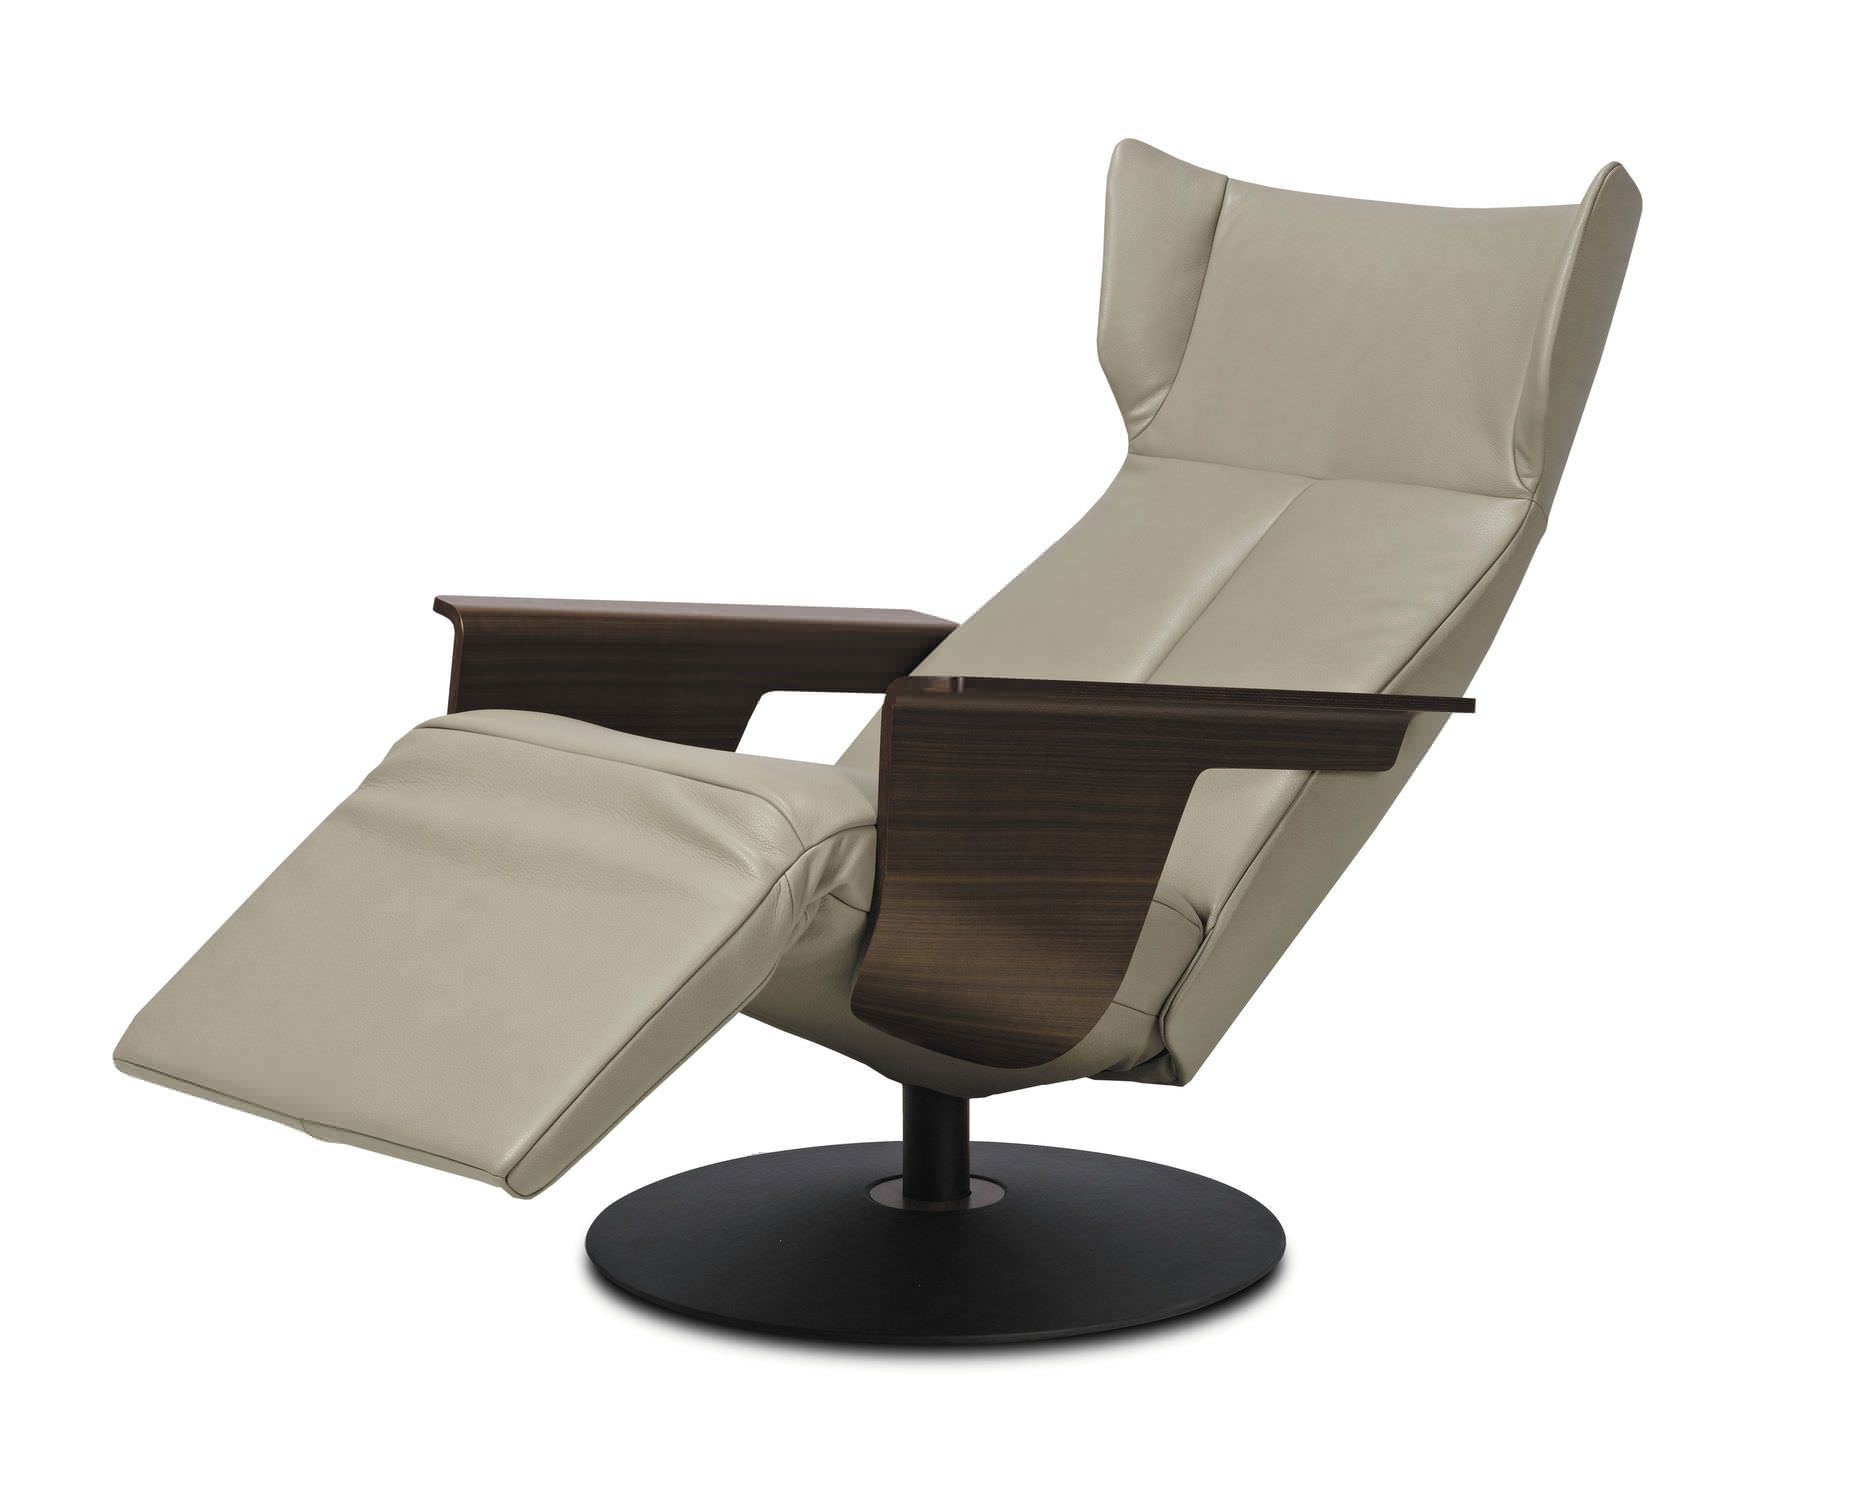 Contemporary Recliner Chairs For Your Furniture Ideas Contemporary Reclining Leather Armcha Contemporary Recliner Chairs Leather Recliner Chair Comfy Armchair